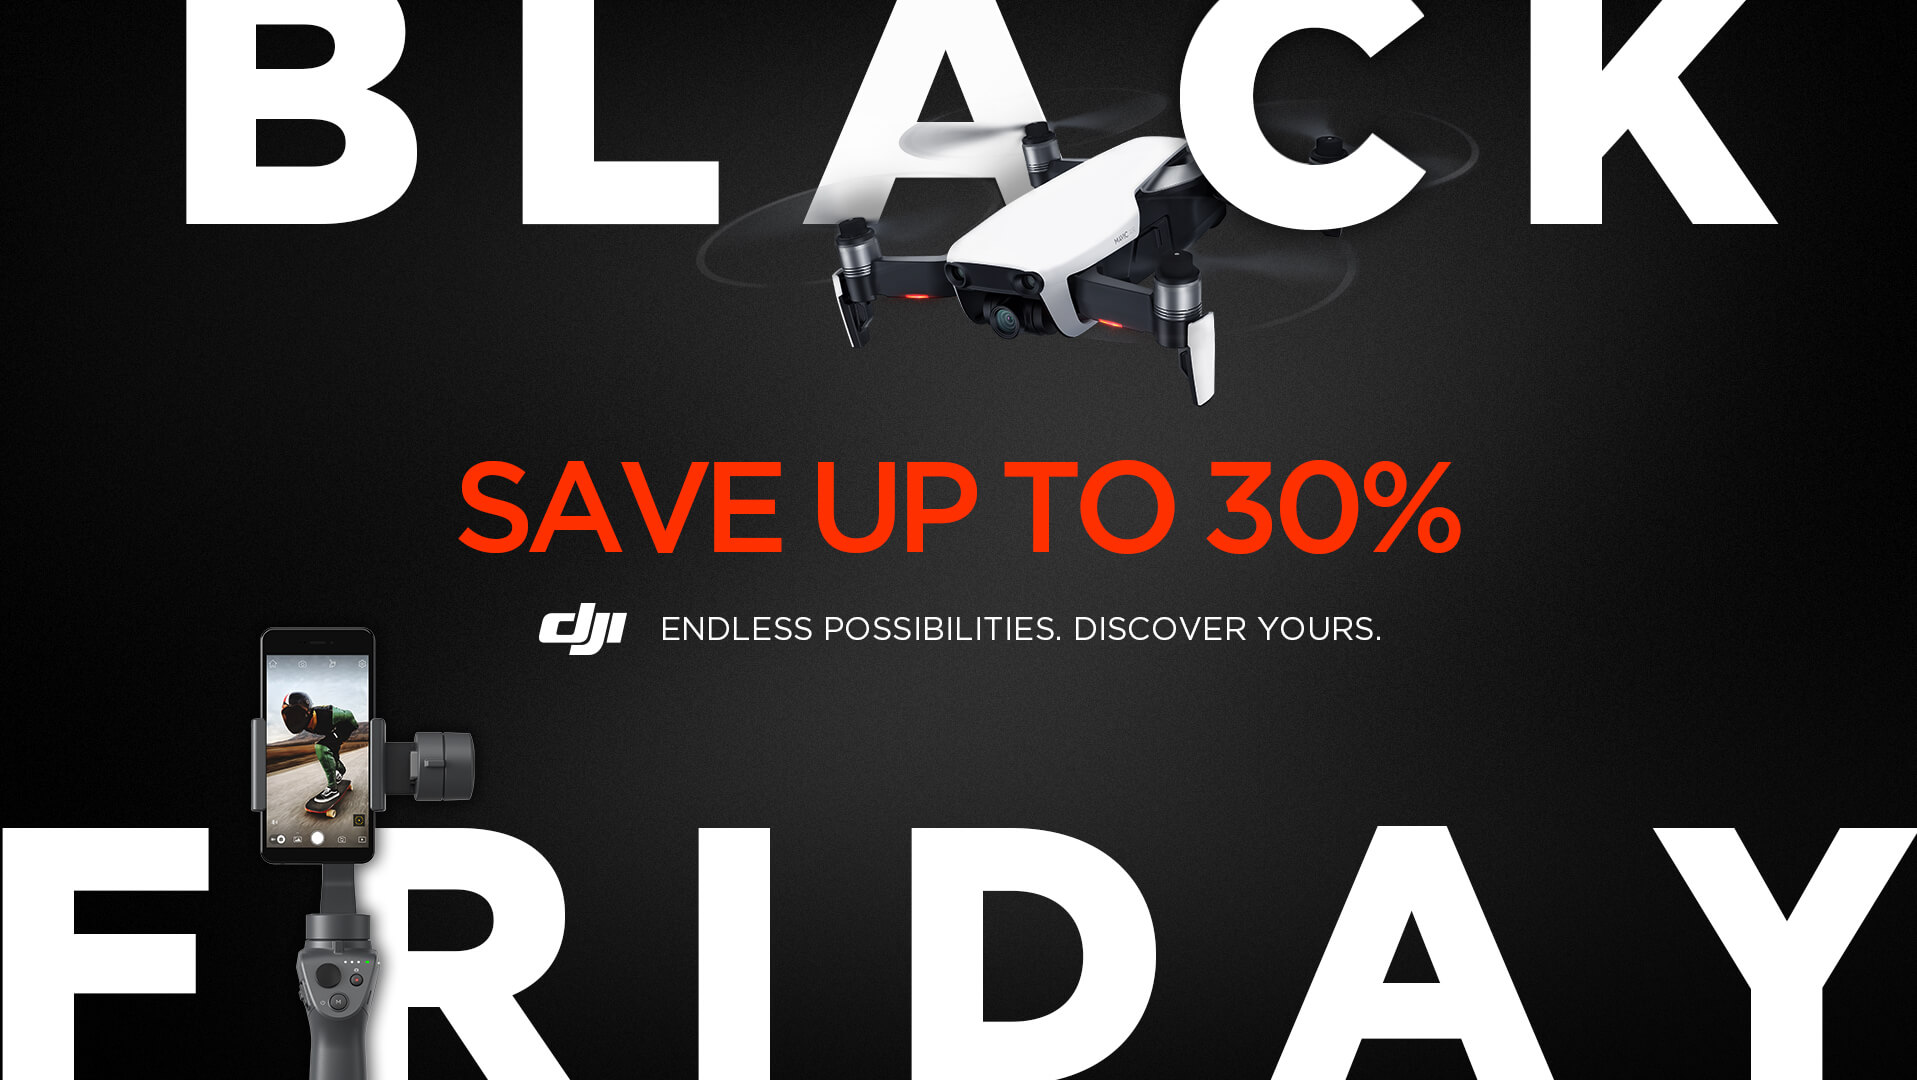 dji black friday deals 2018 the complete guide dji guides. Black Bedroom Furniture Sets. Home Design Ideas